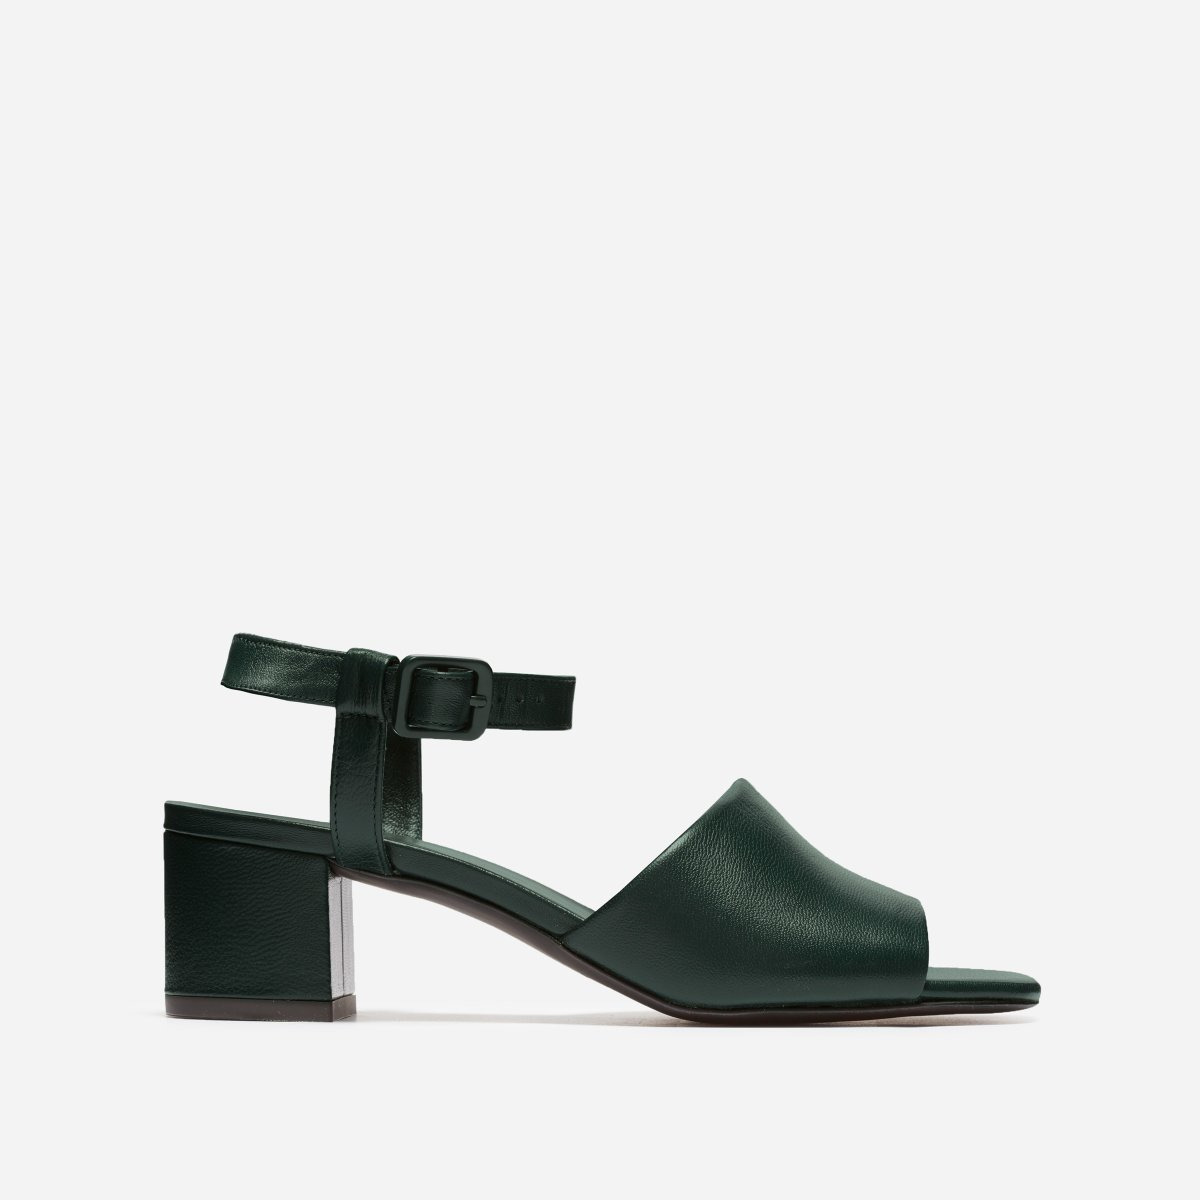 Everlane The Block Heel Sandal in Dark Green